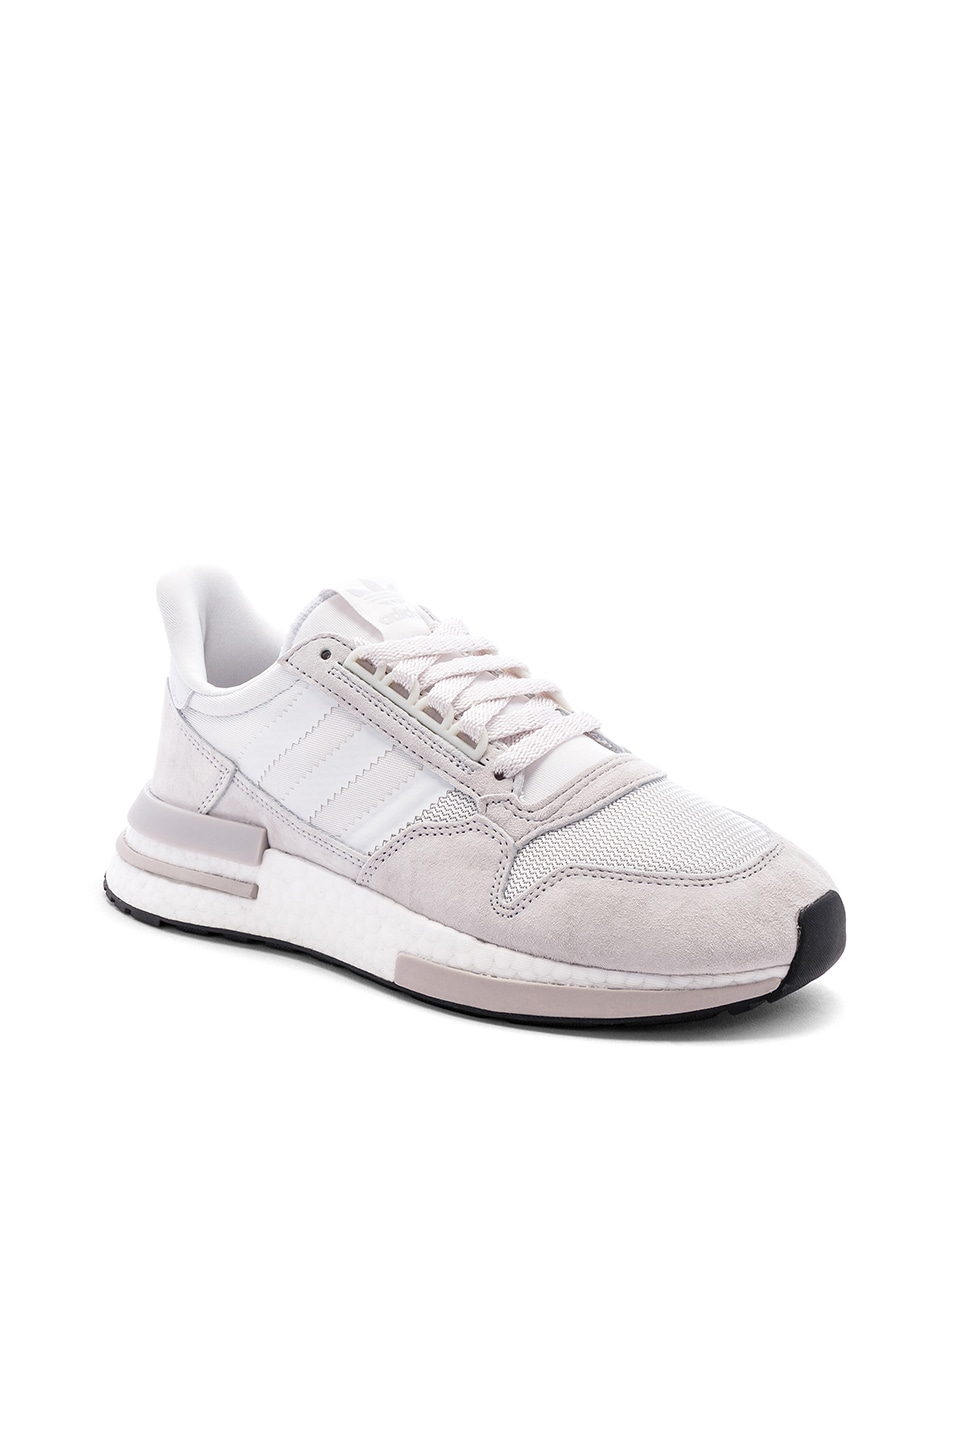 Image 2 of adidas Originals ZX 500 RM in Cloud White & White & Cloud White